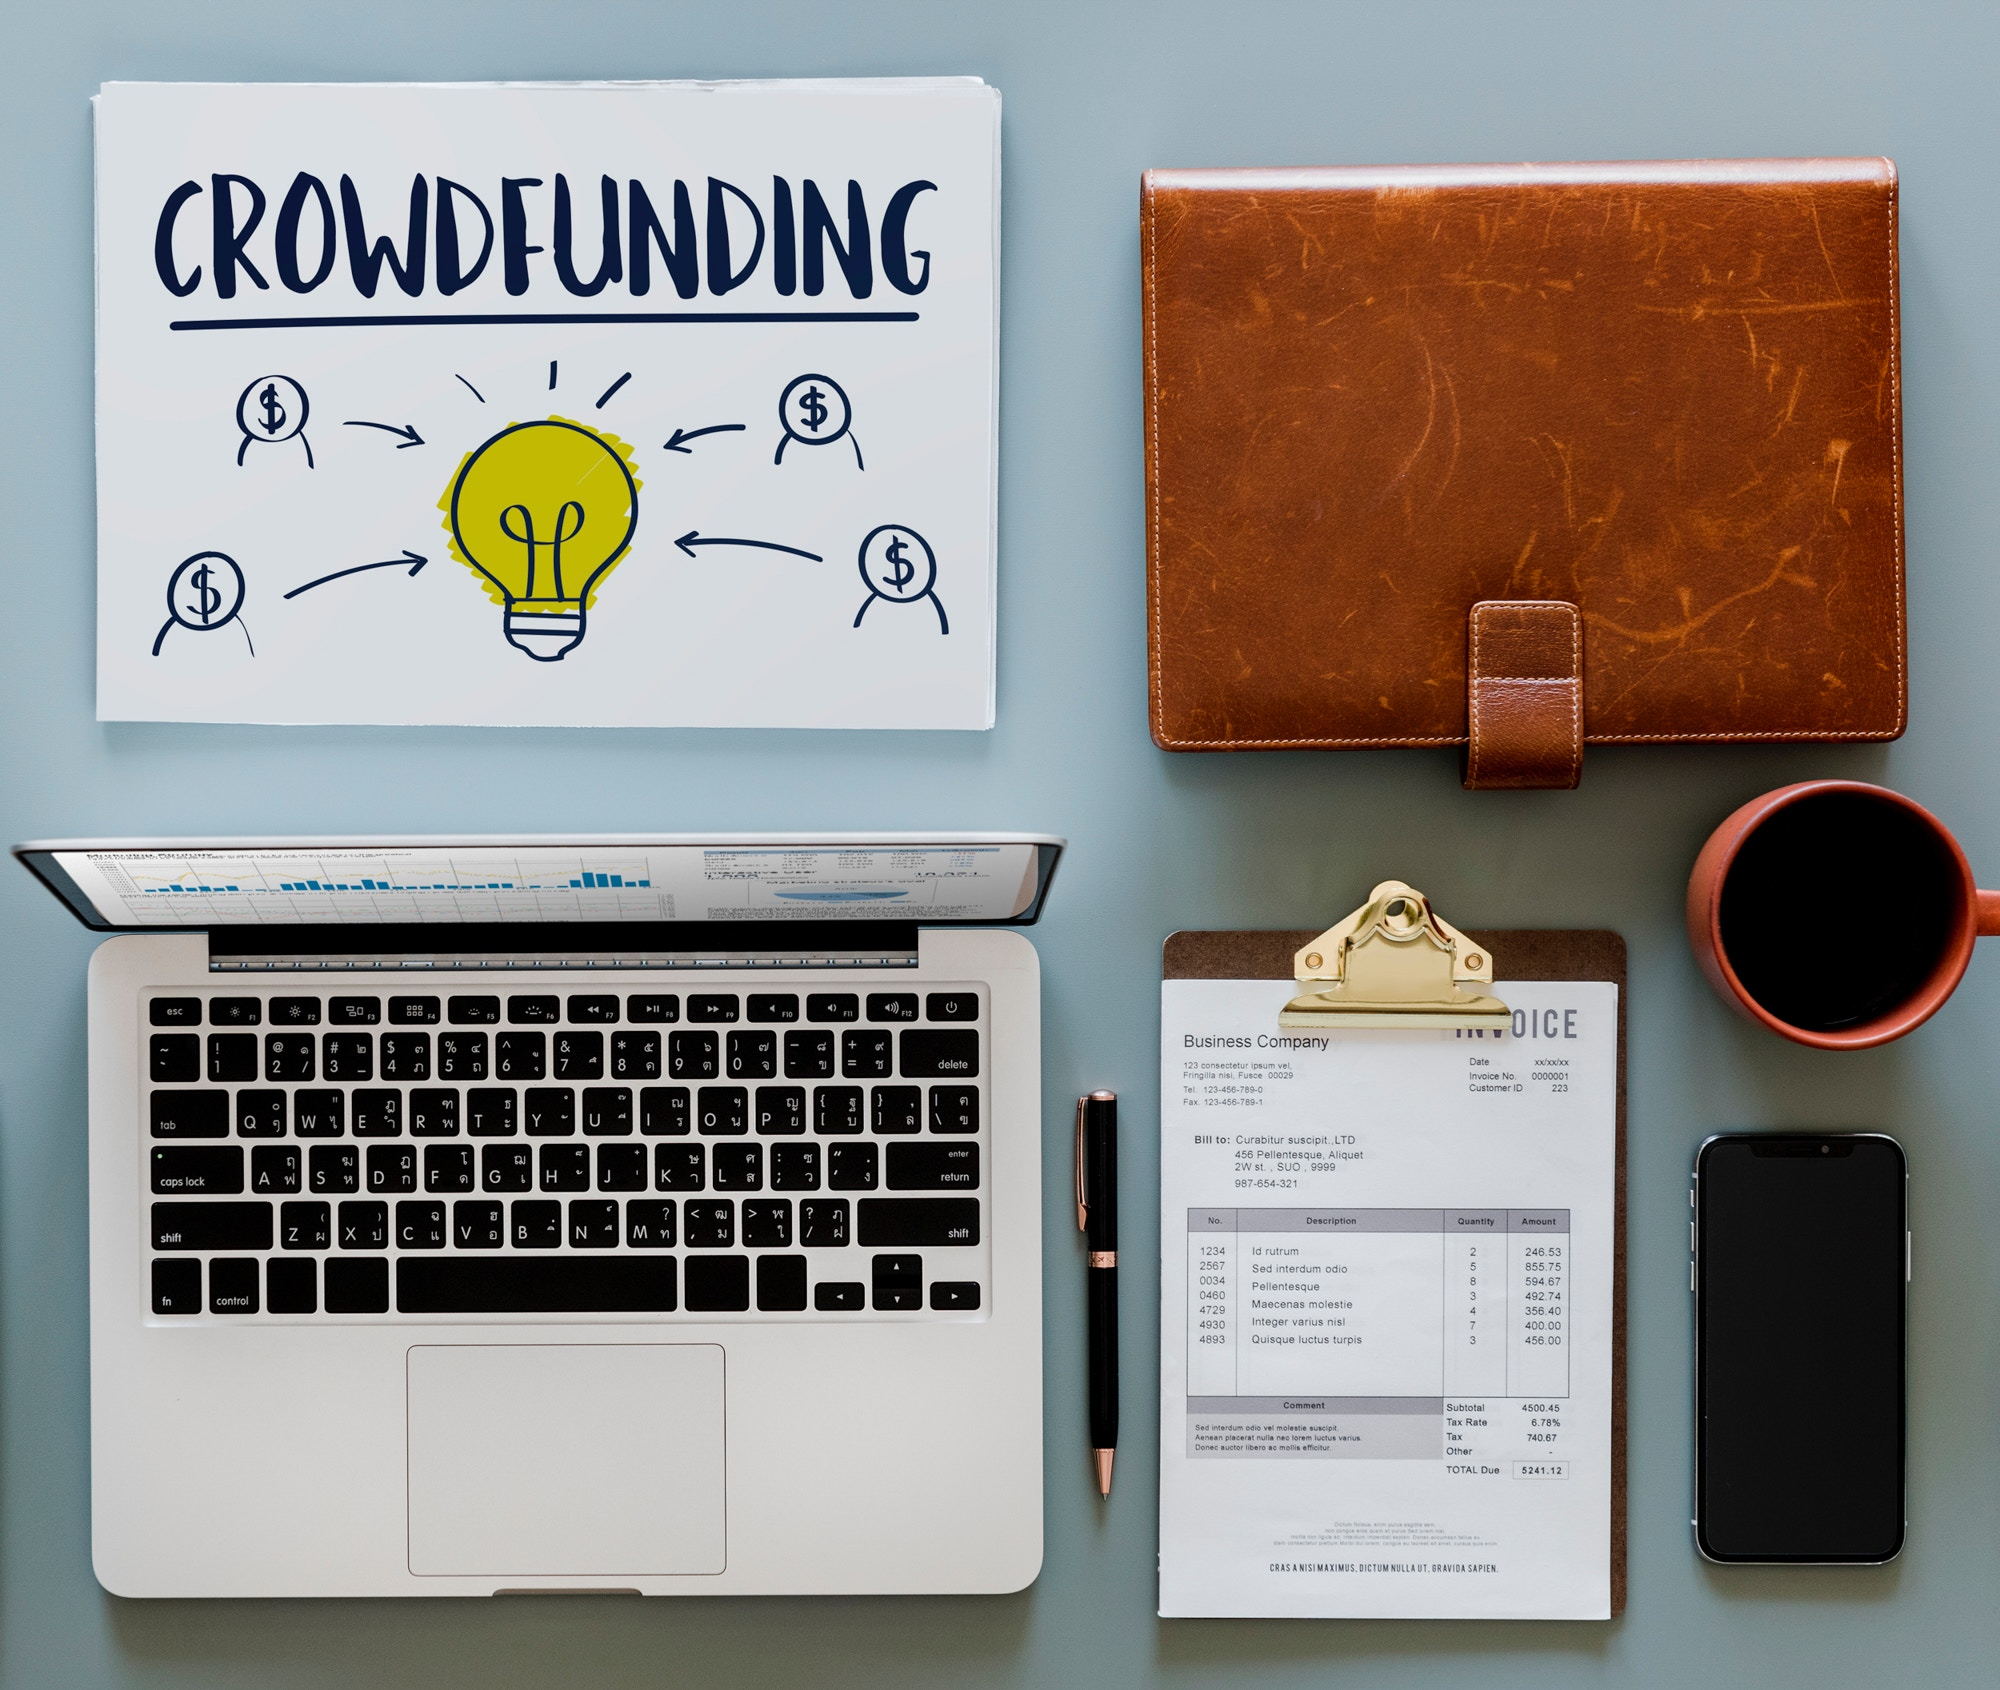 Lending-Based Crowdfunding